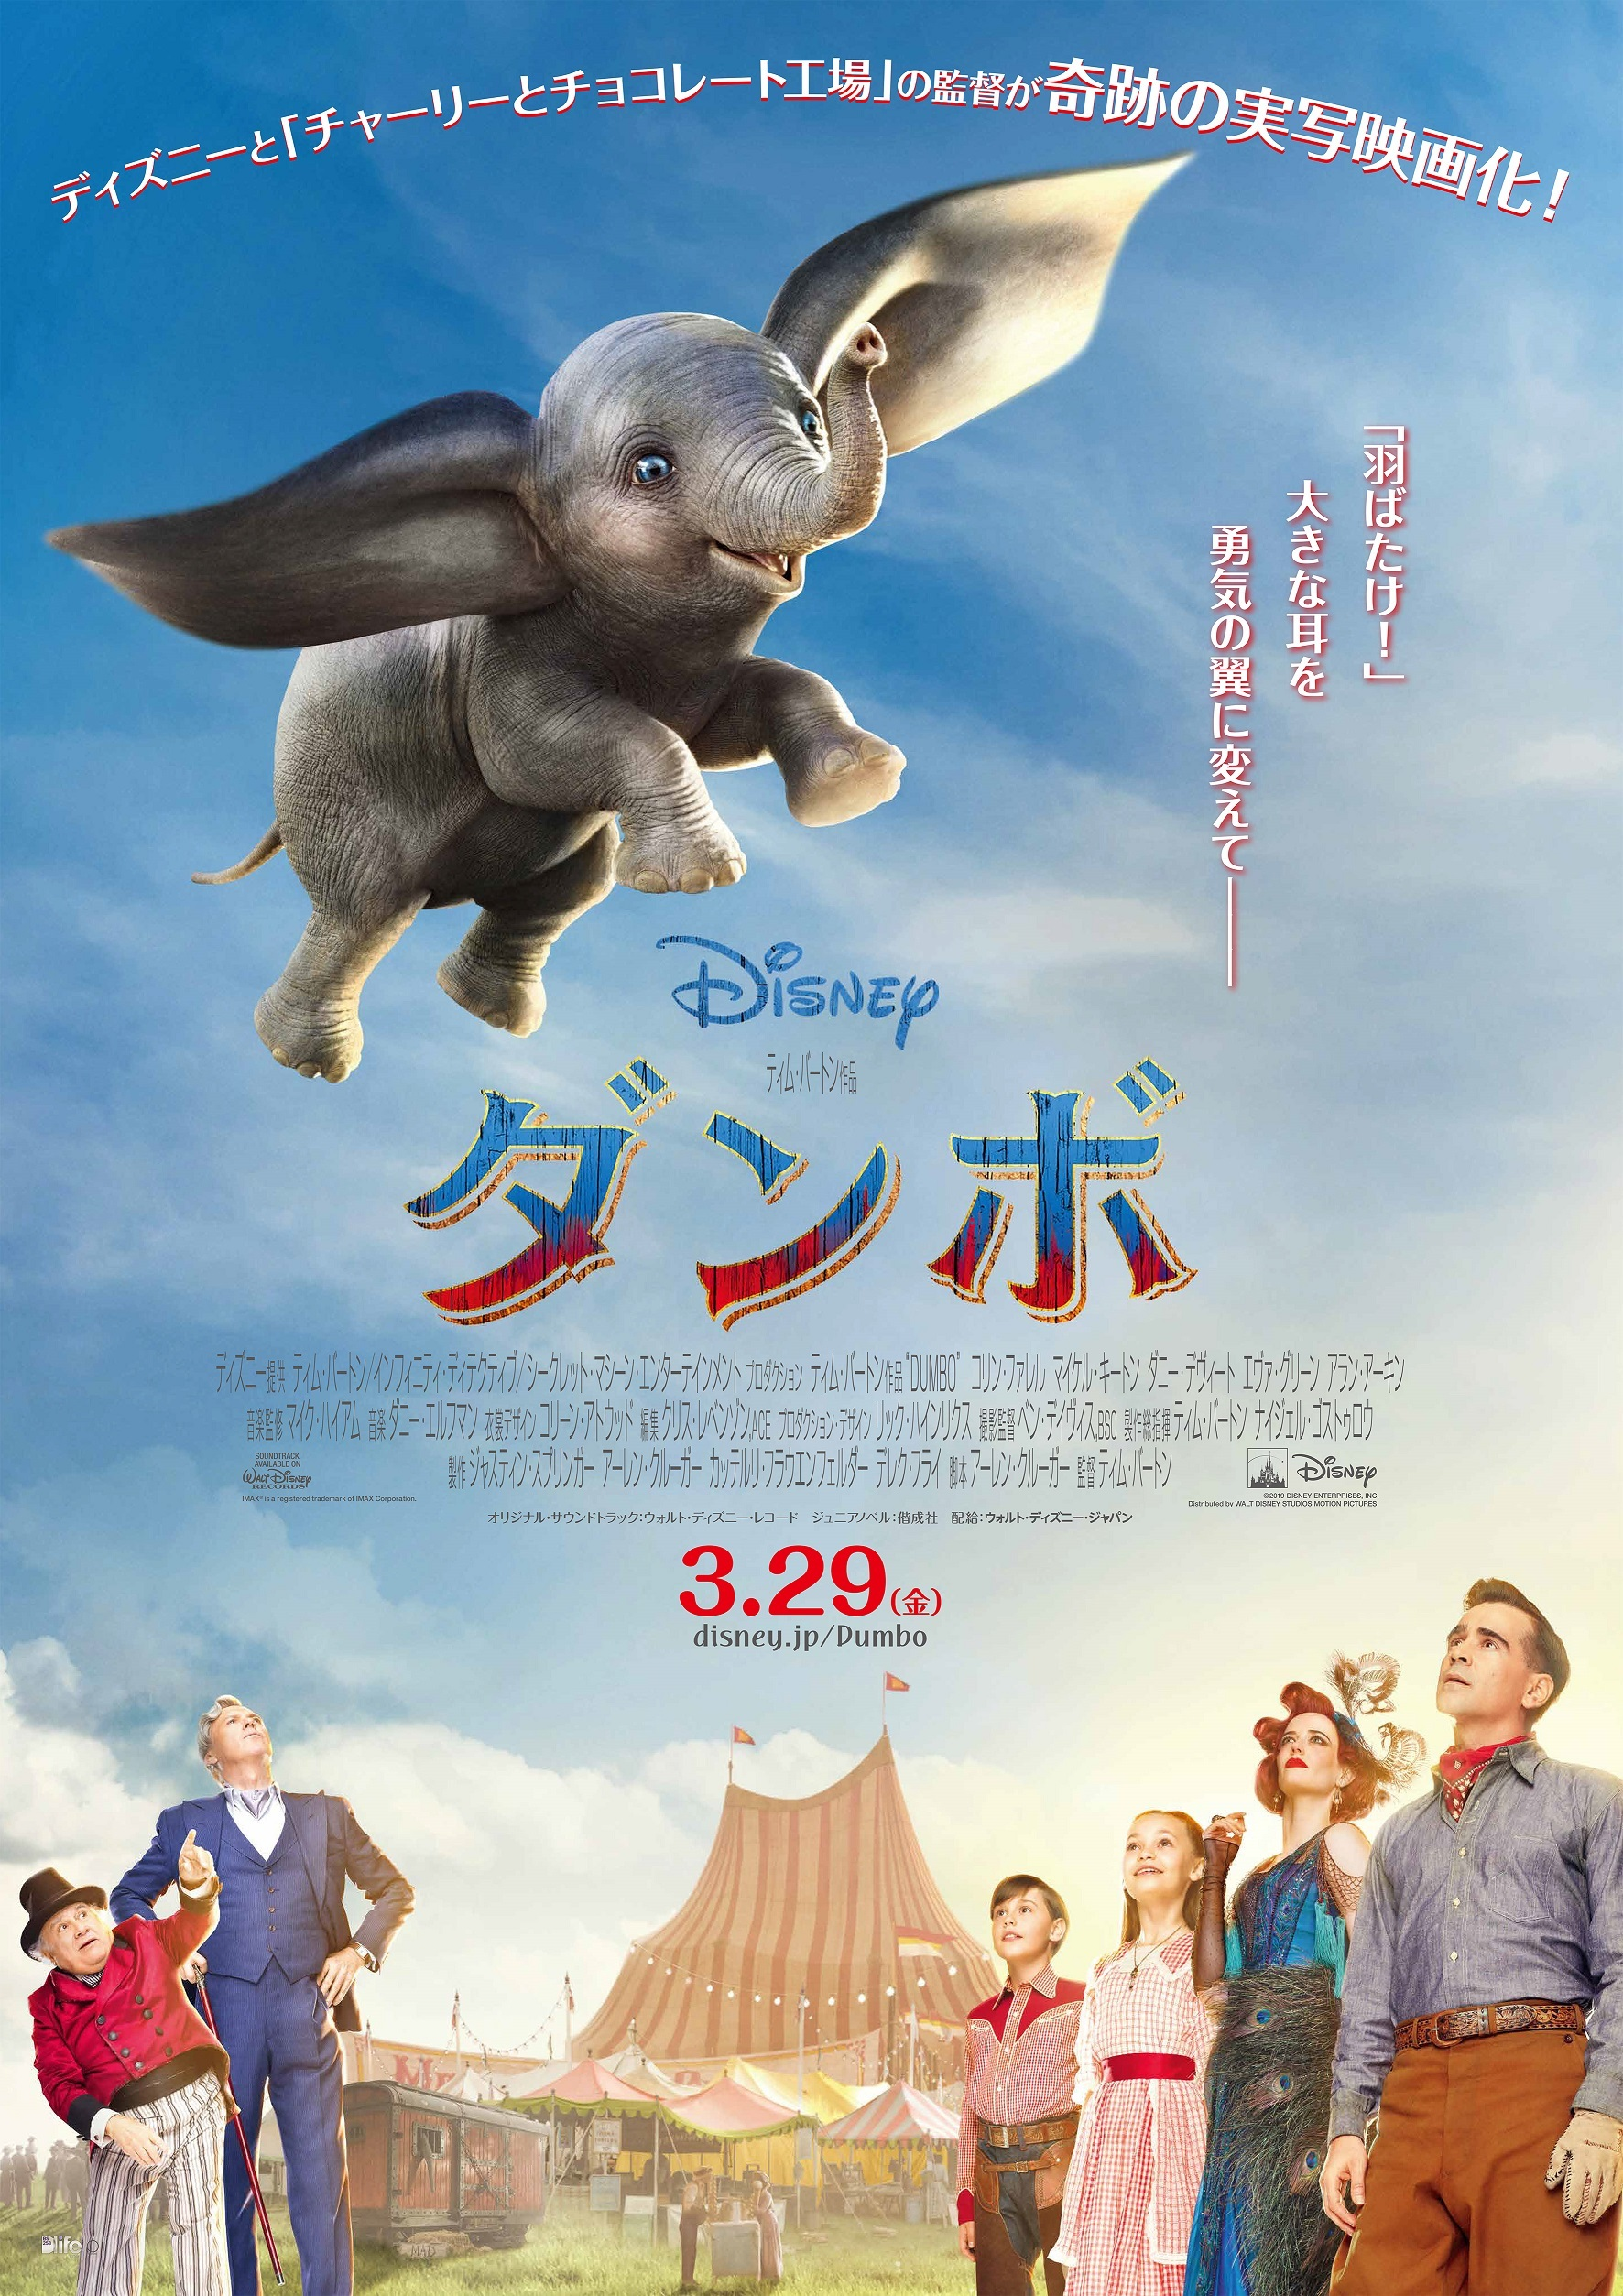 (C)2019 Disney Enterprises, Inc. All Rights Reserved. 3月29日(金)全国公開